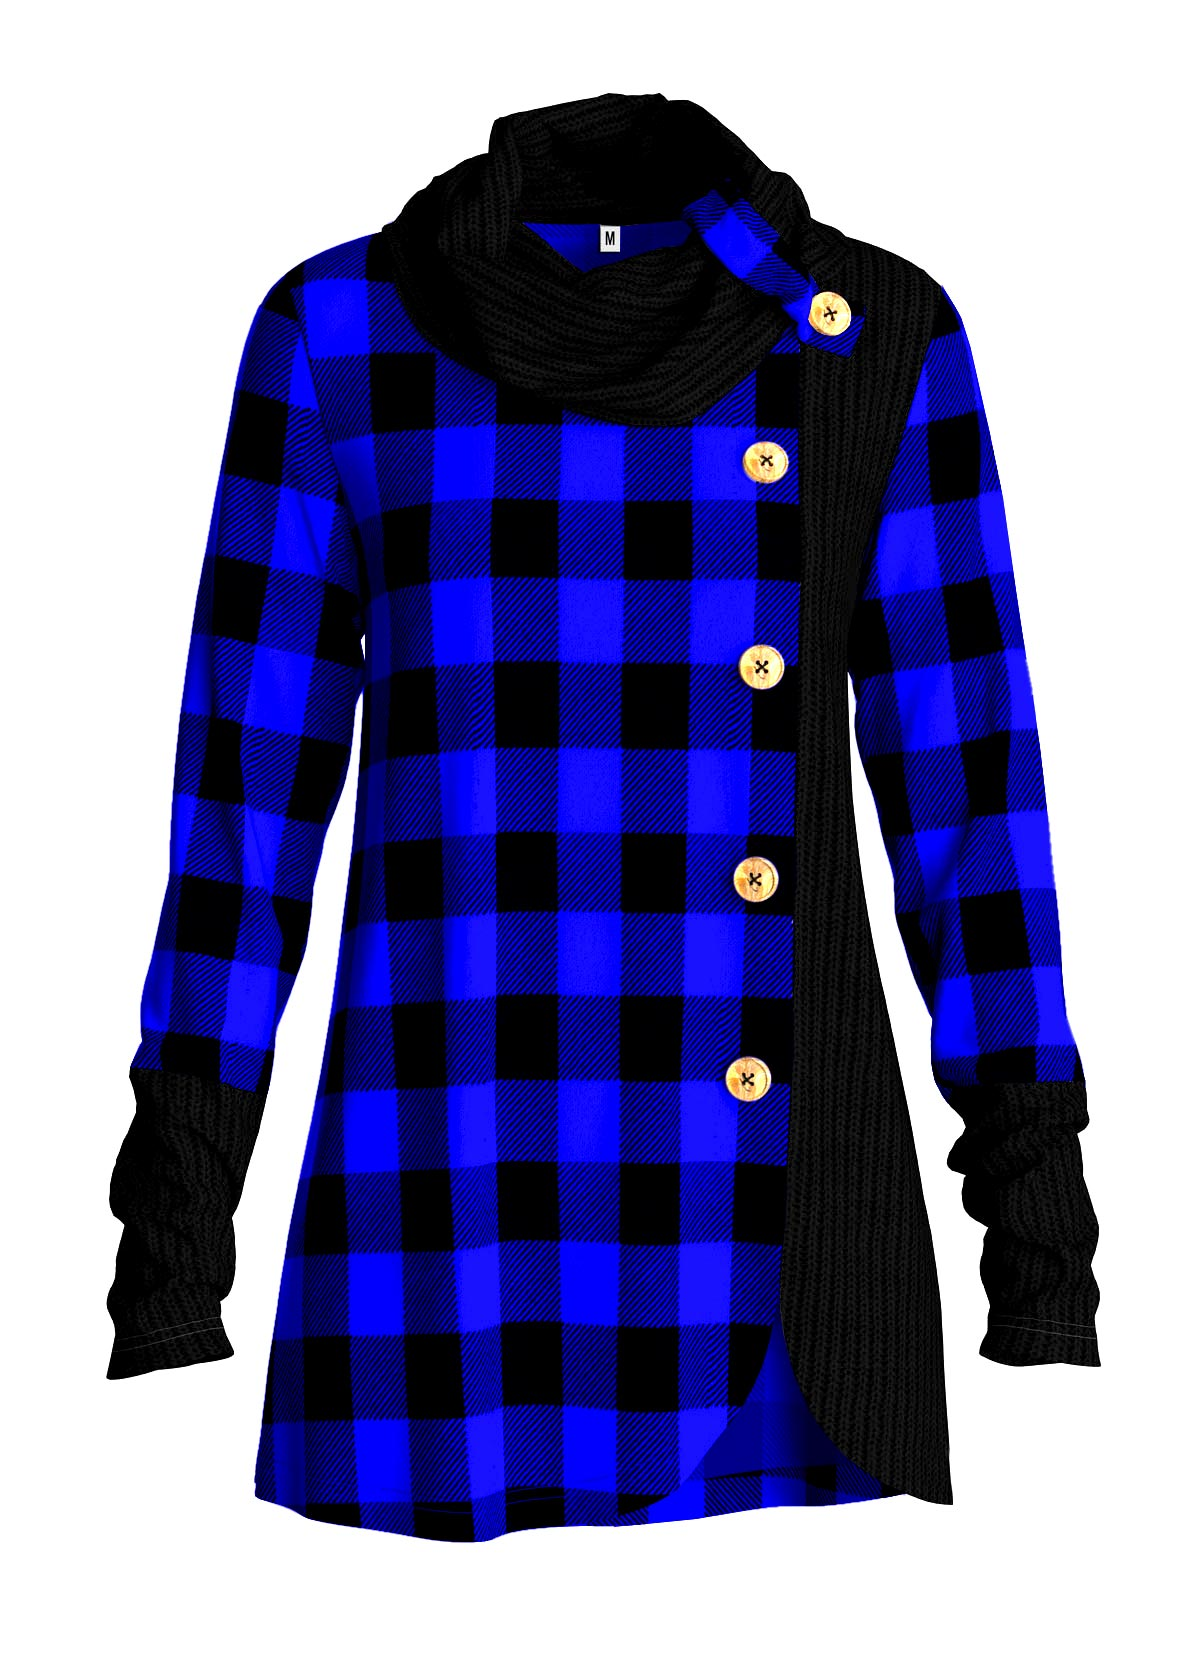 Asymmetric Hem Cowl Neck Plaid Tunic Top